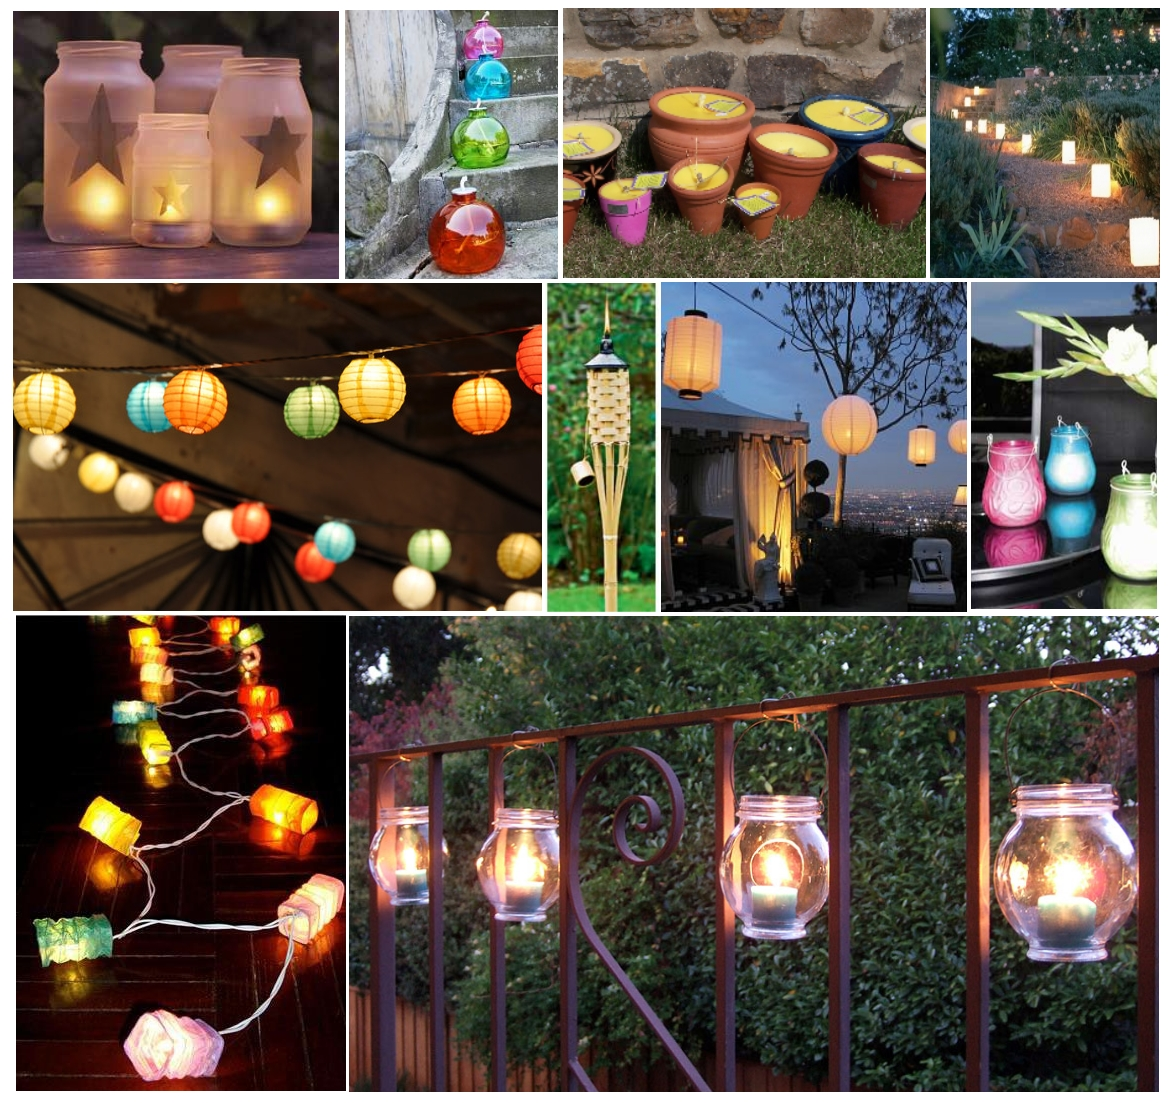 Incredible Outdoor BBQ Party Decoration Ideas 1176 x 1103 · 972 kB · jpeg